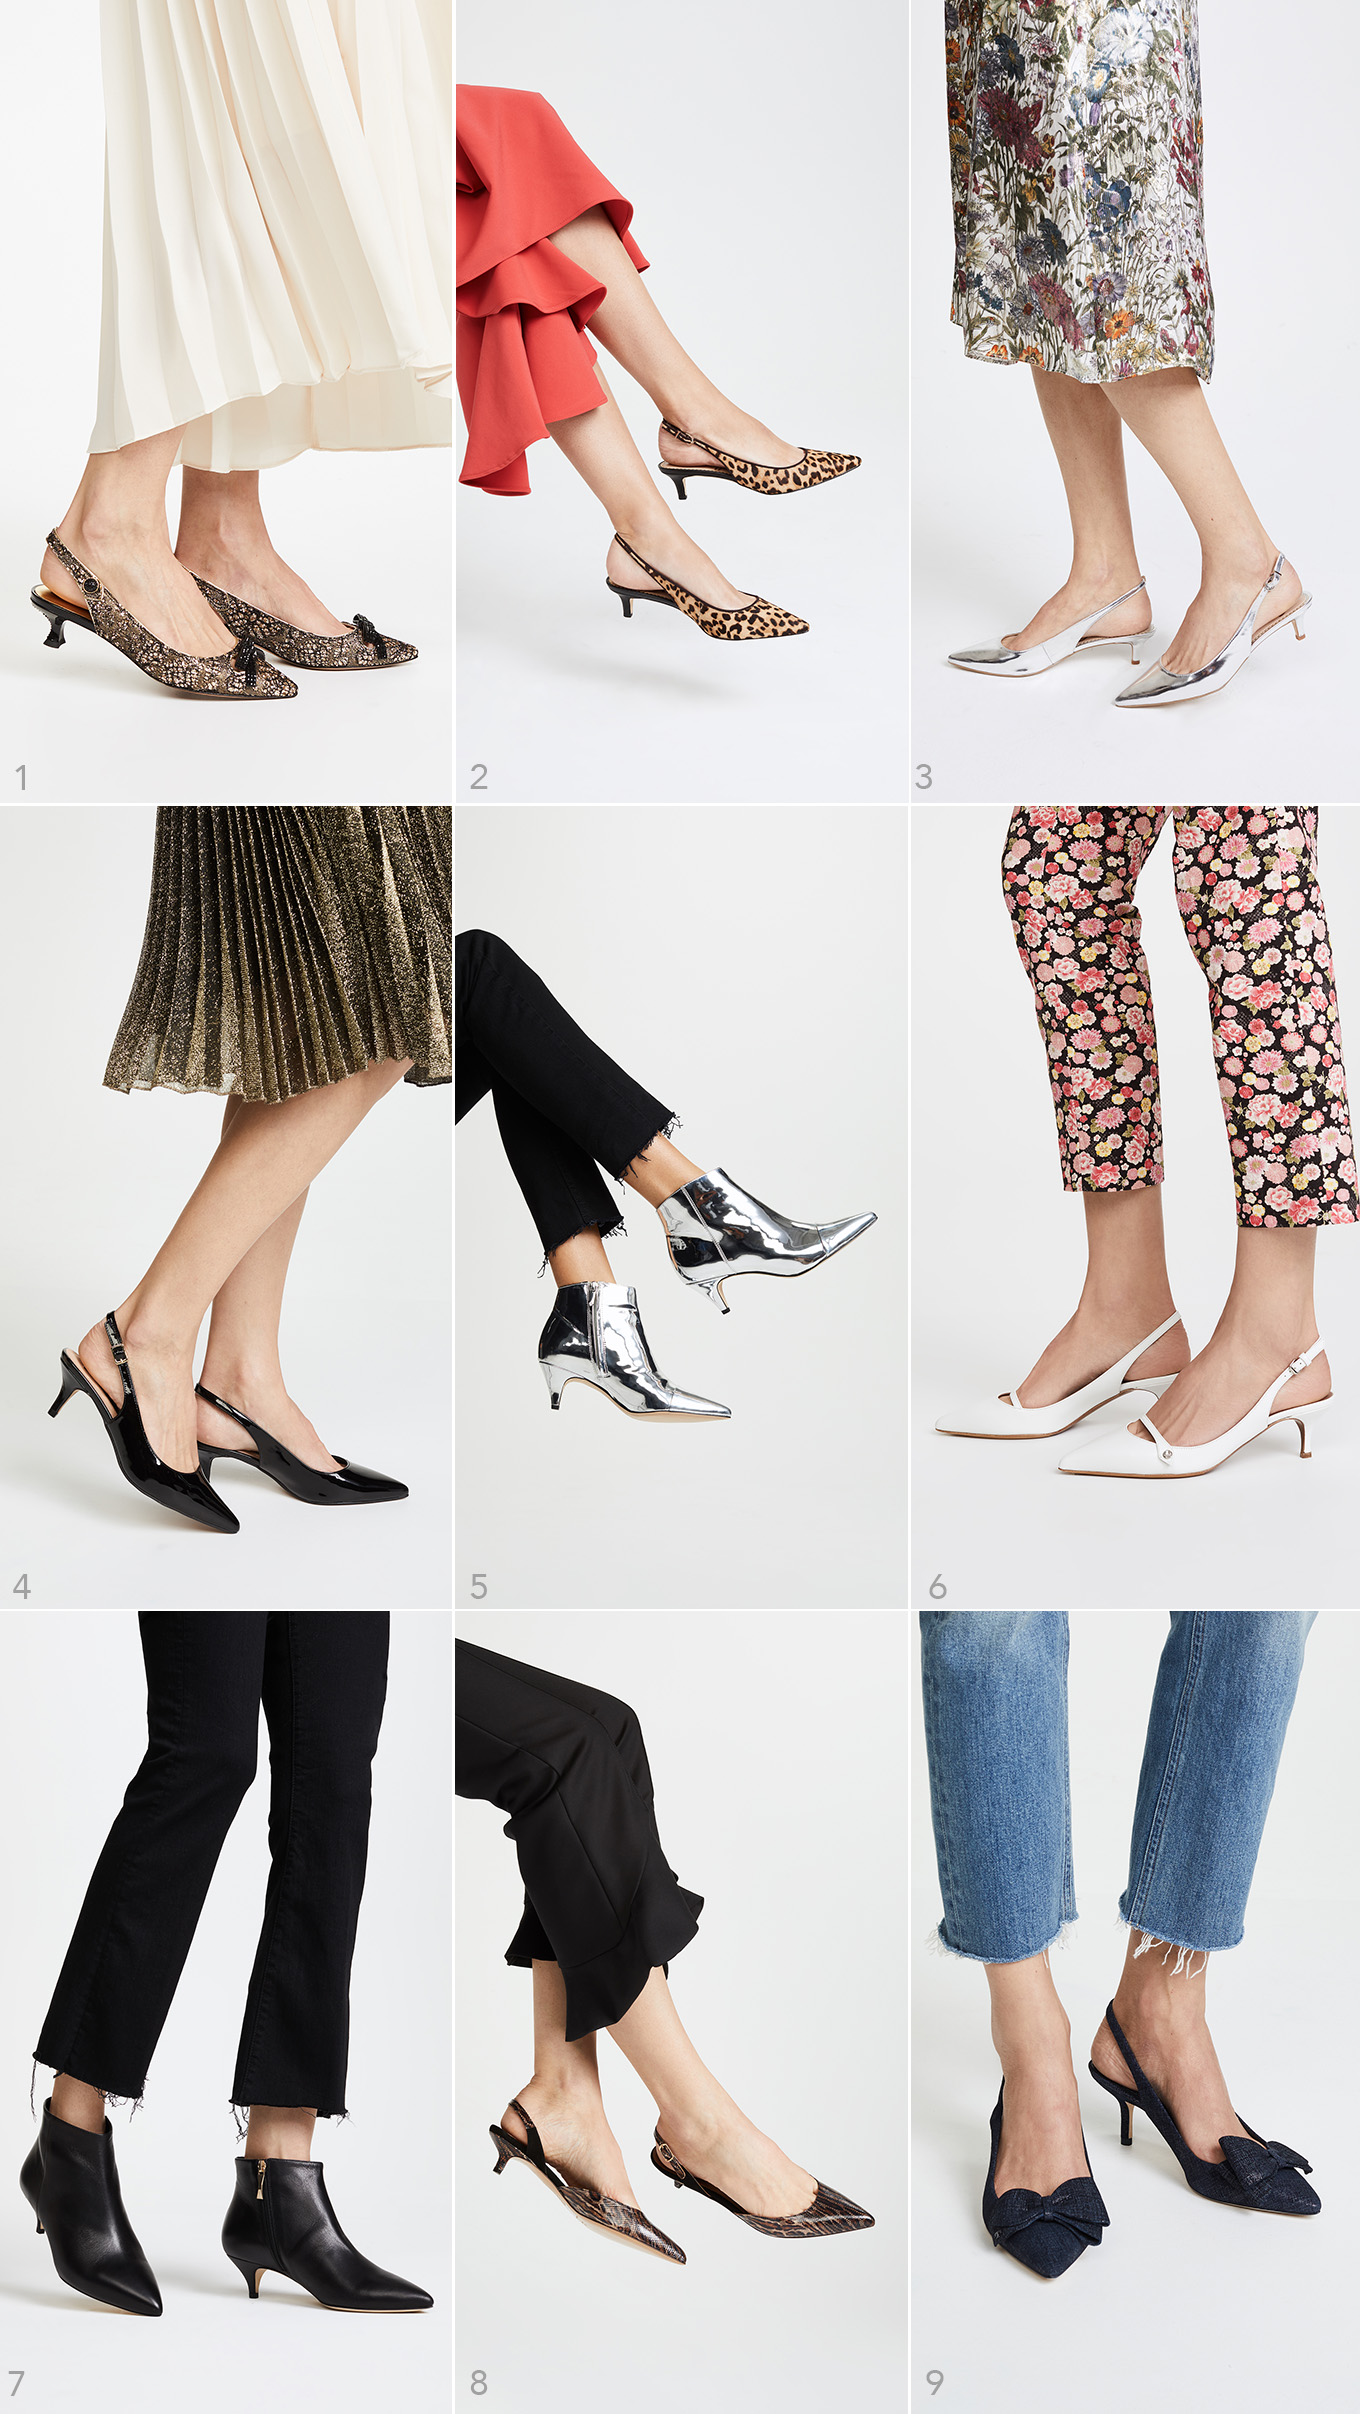 Ridgely Brode finds lots of Kitten Heels that look great with dresses, skirts and even the very trendy frayed jeans on her blog, Ridgely's Radar.